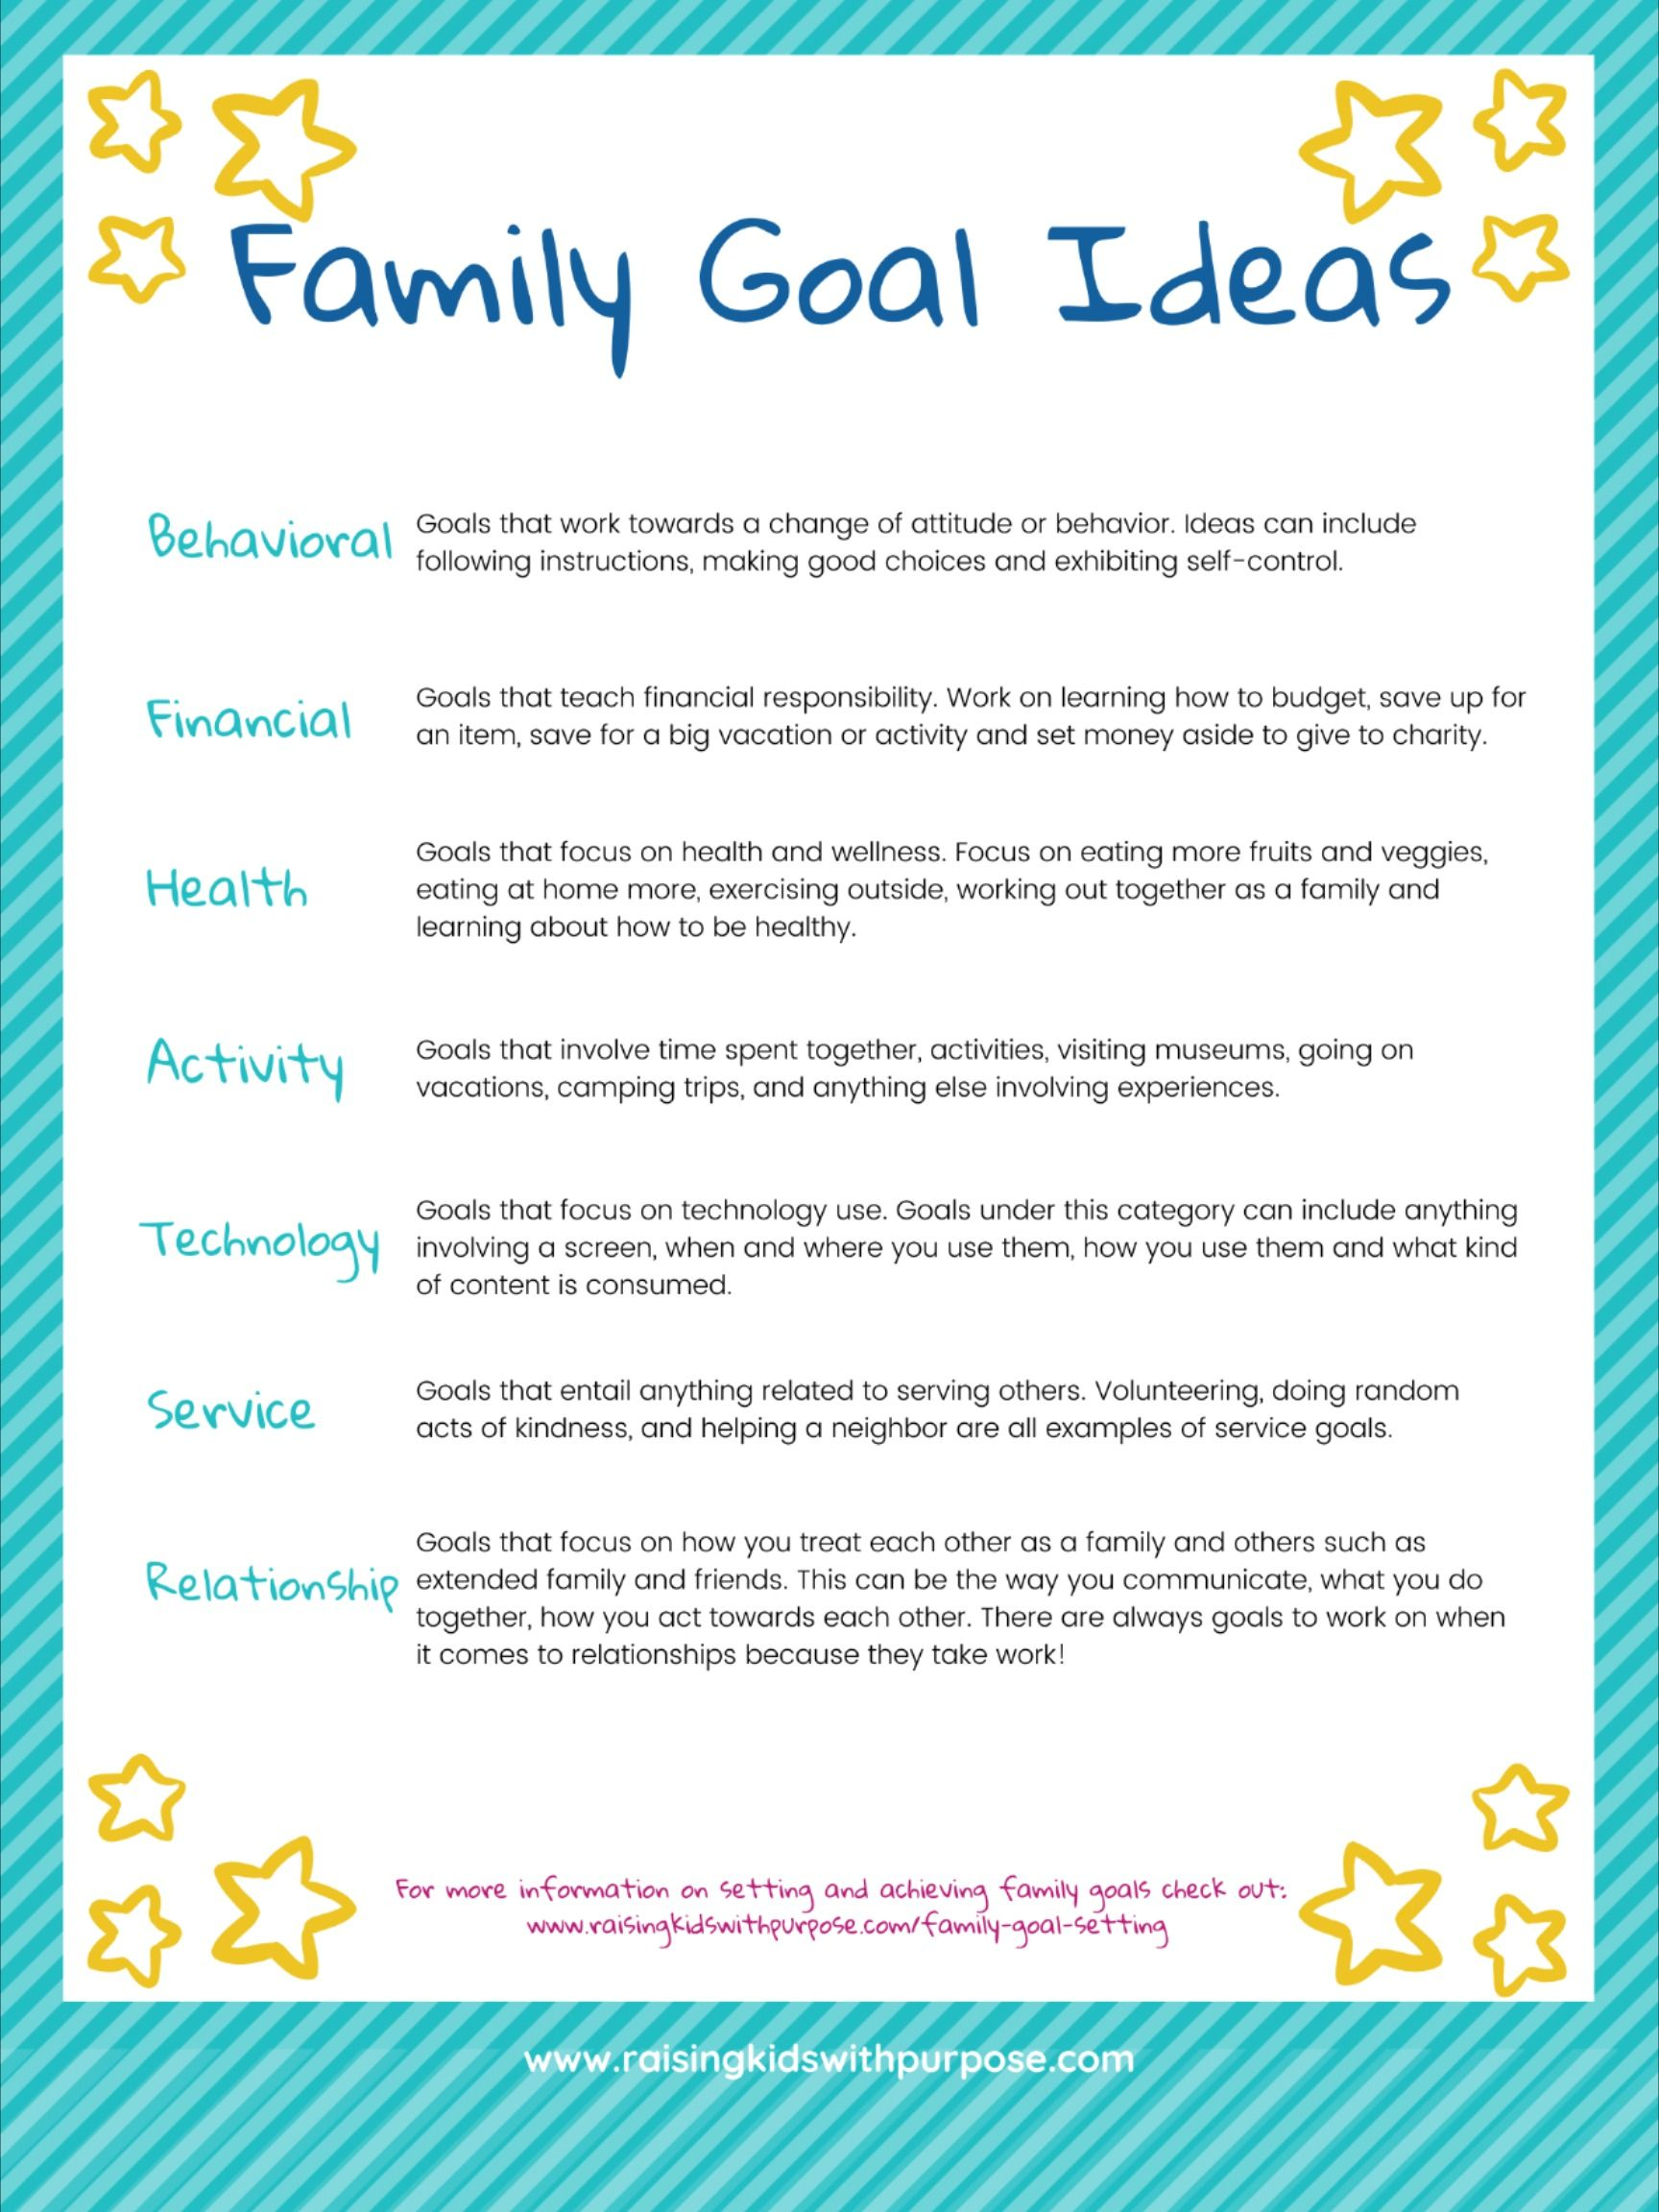 Setting Family Goals Toolkit Family Mission Statements Family Goals Family Mission